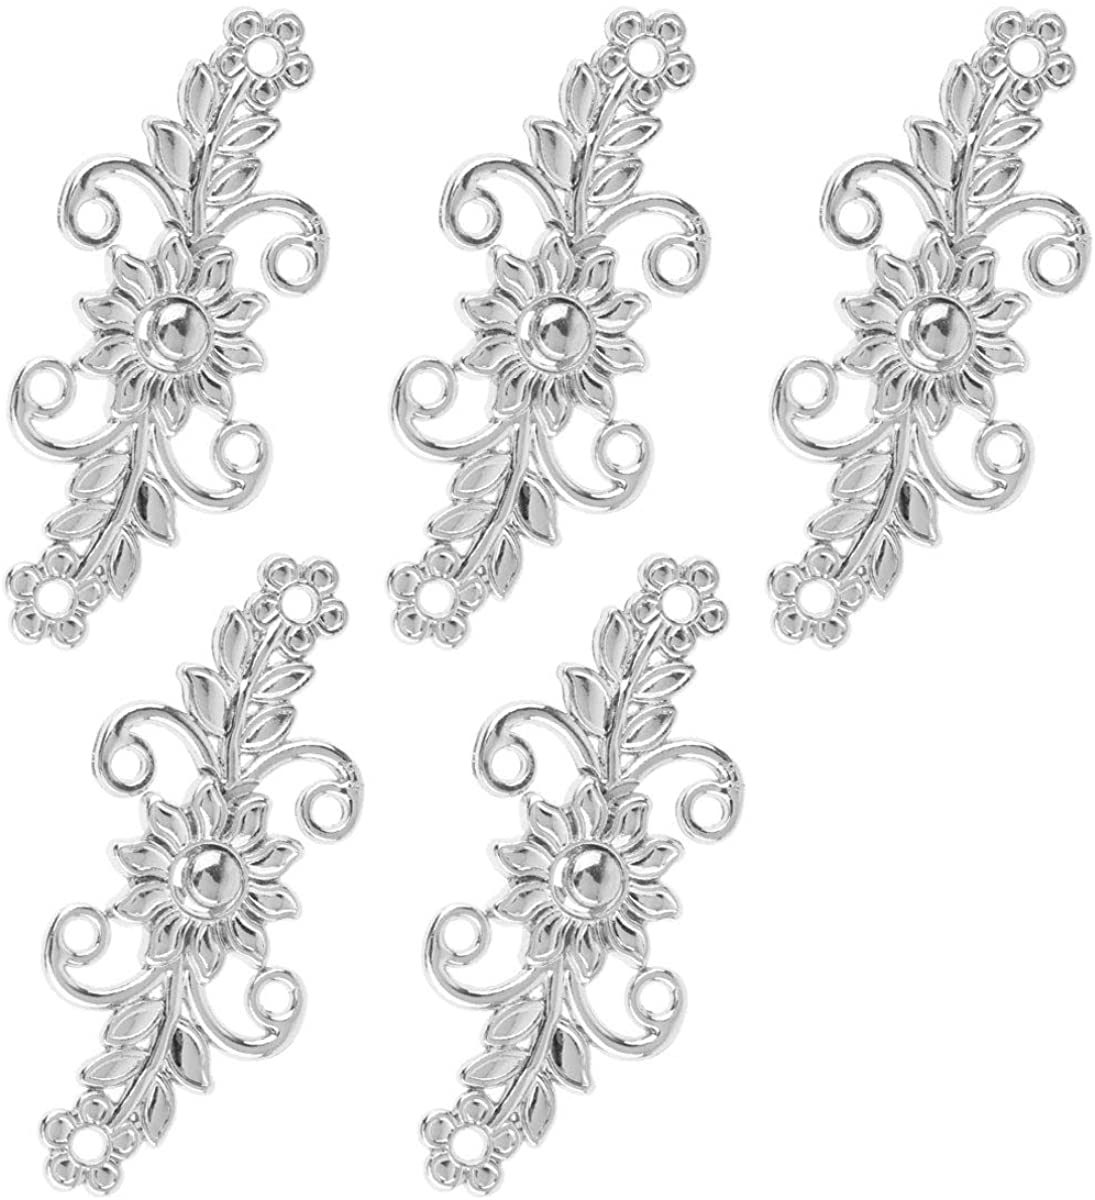 IEFIEL 5 Pairs Retro Flower Clasp safety Filigree Trivet Fasteners Clip cheap